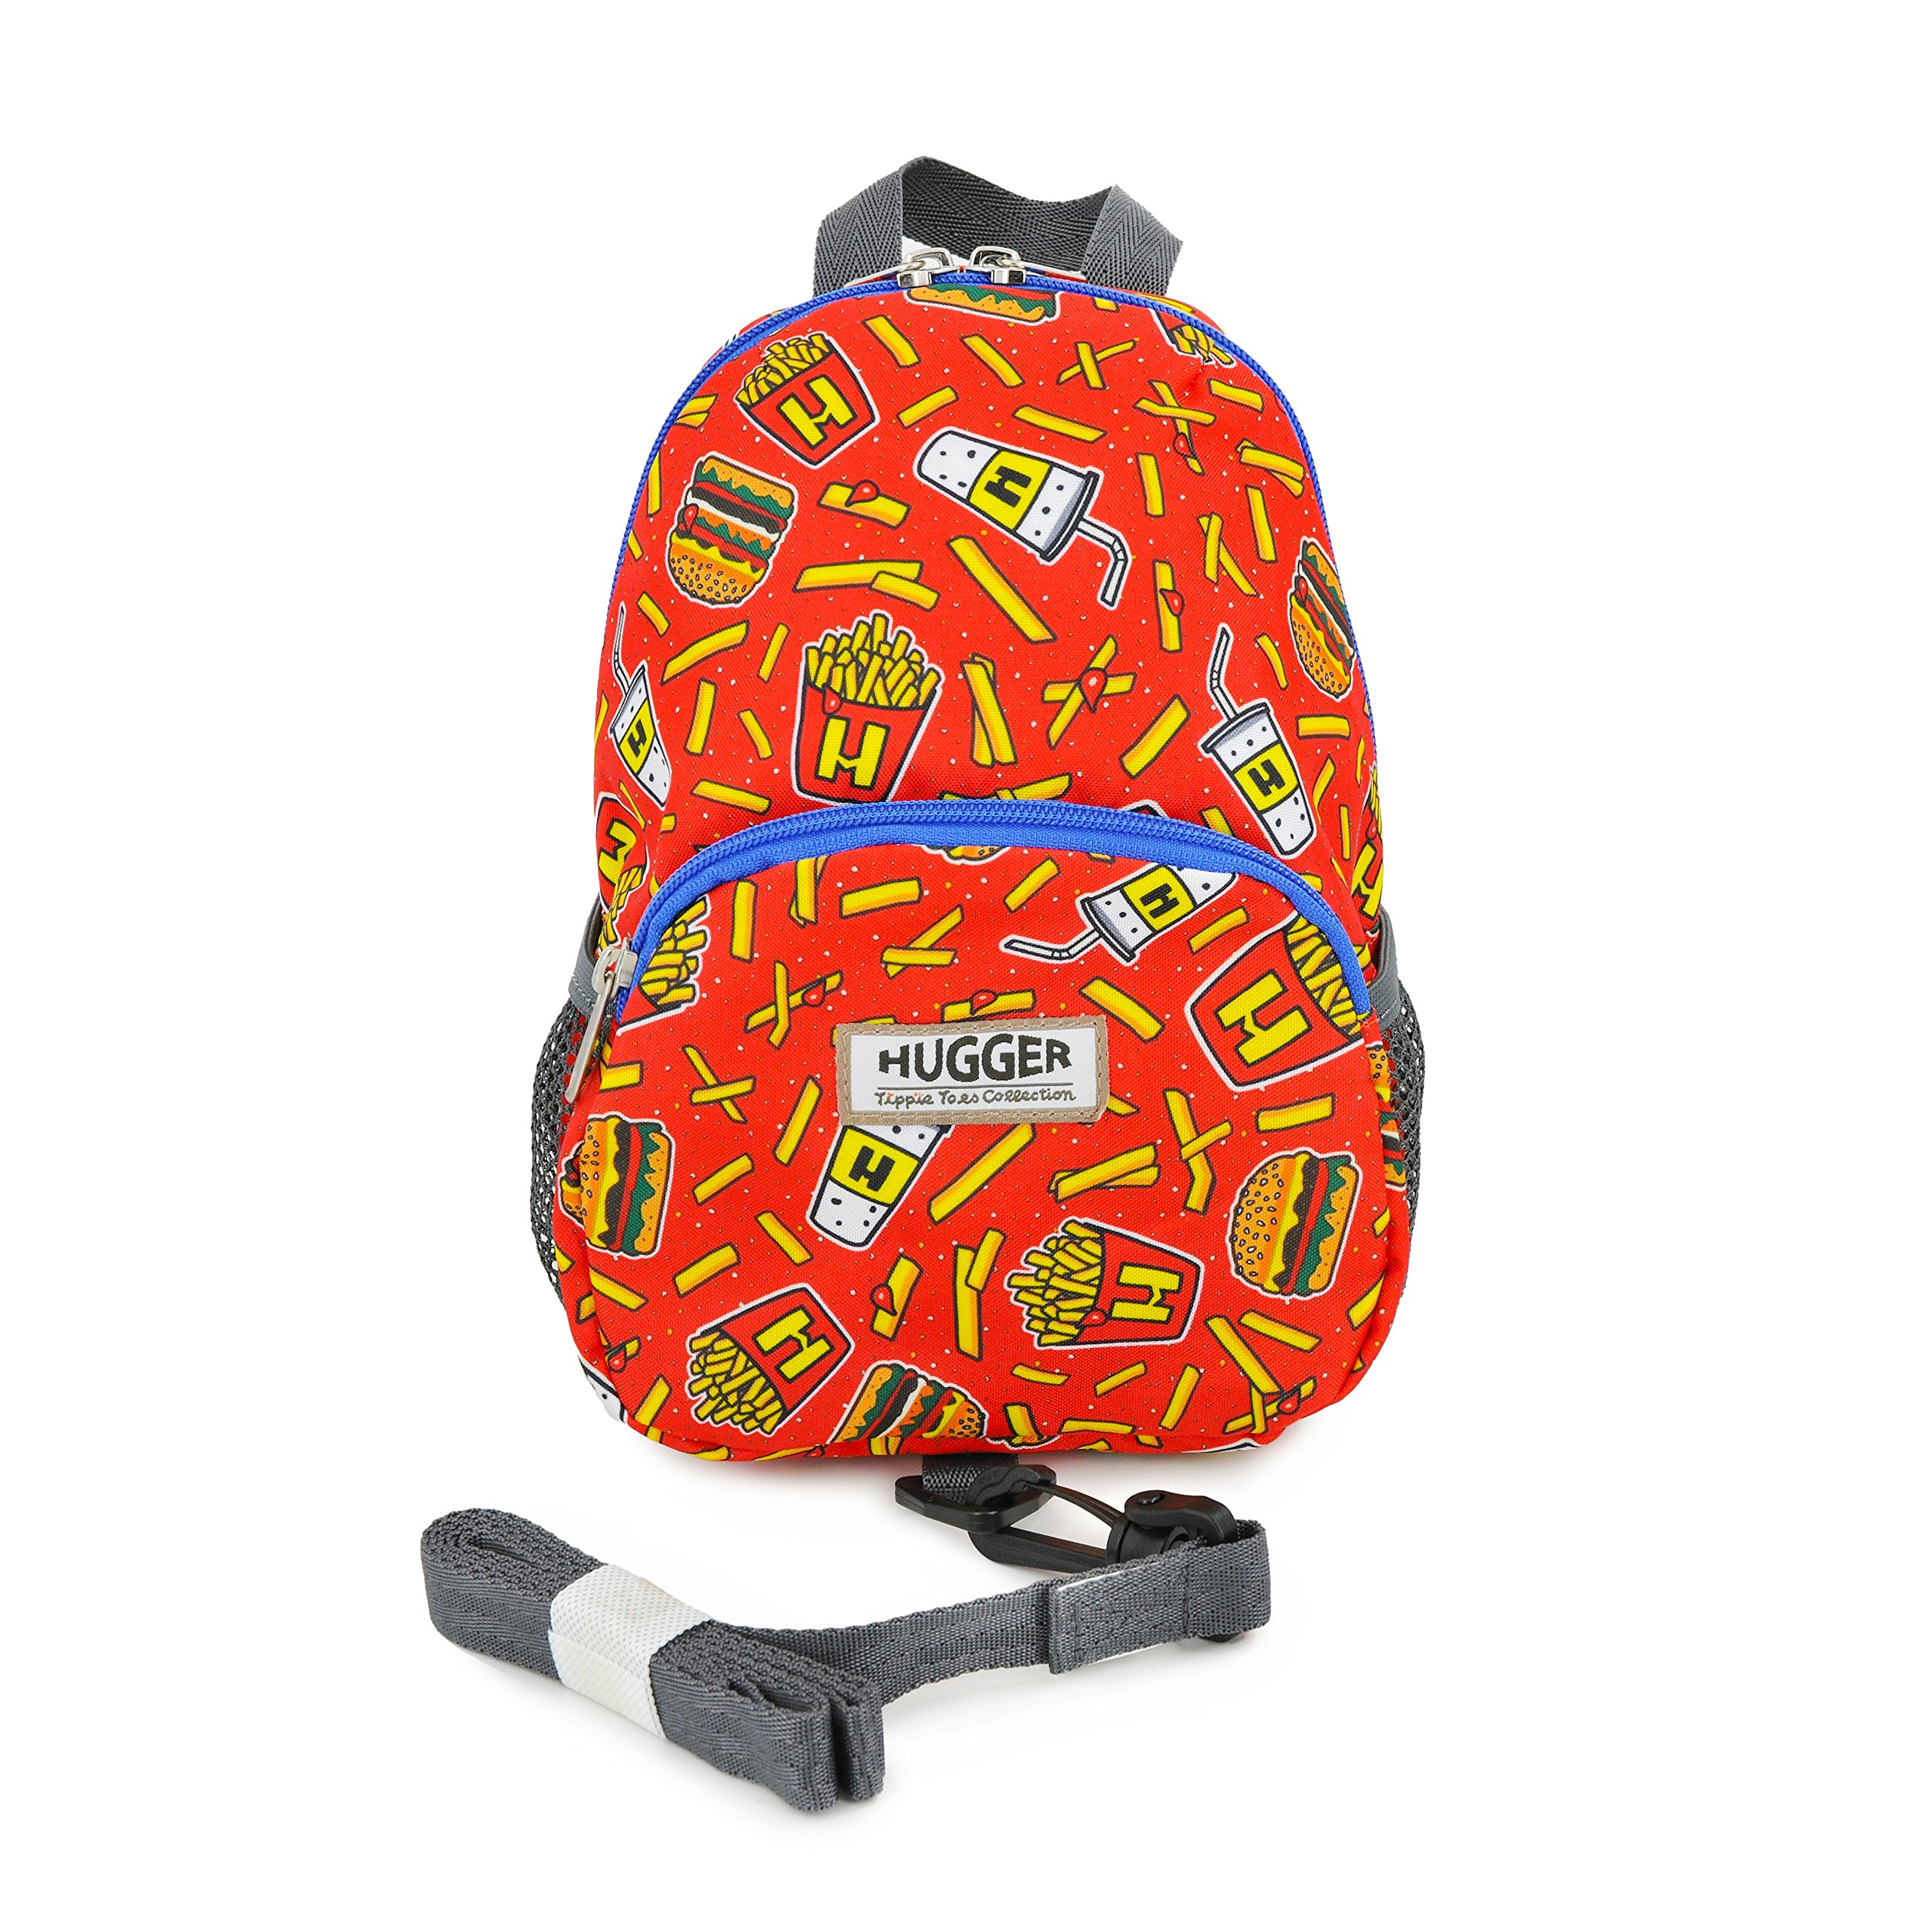 Hugger Totty Tripper Toddler's Backpack with Safety Harness (HOJO's Burgers and Fries)